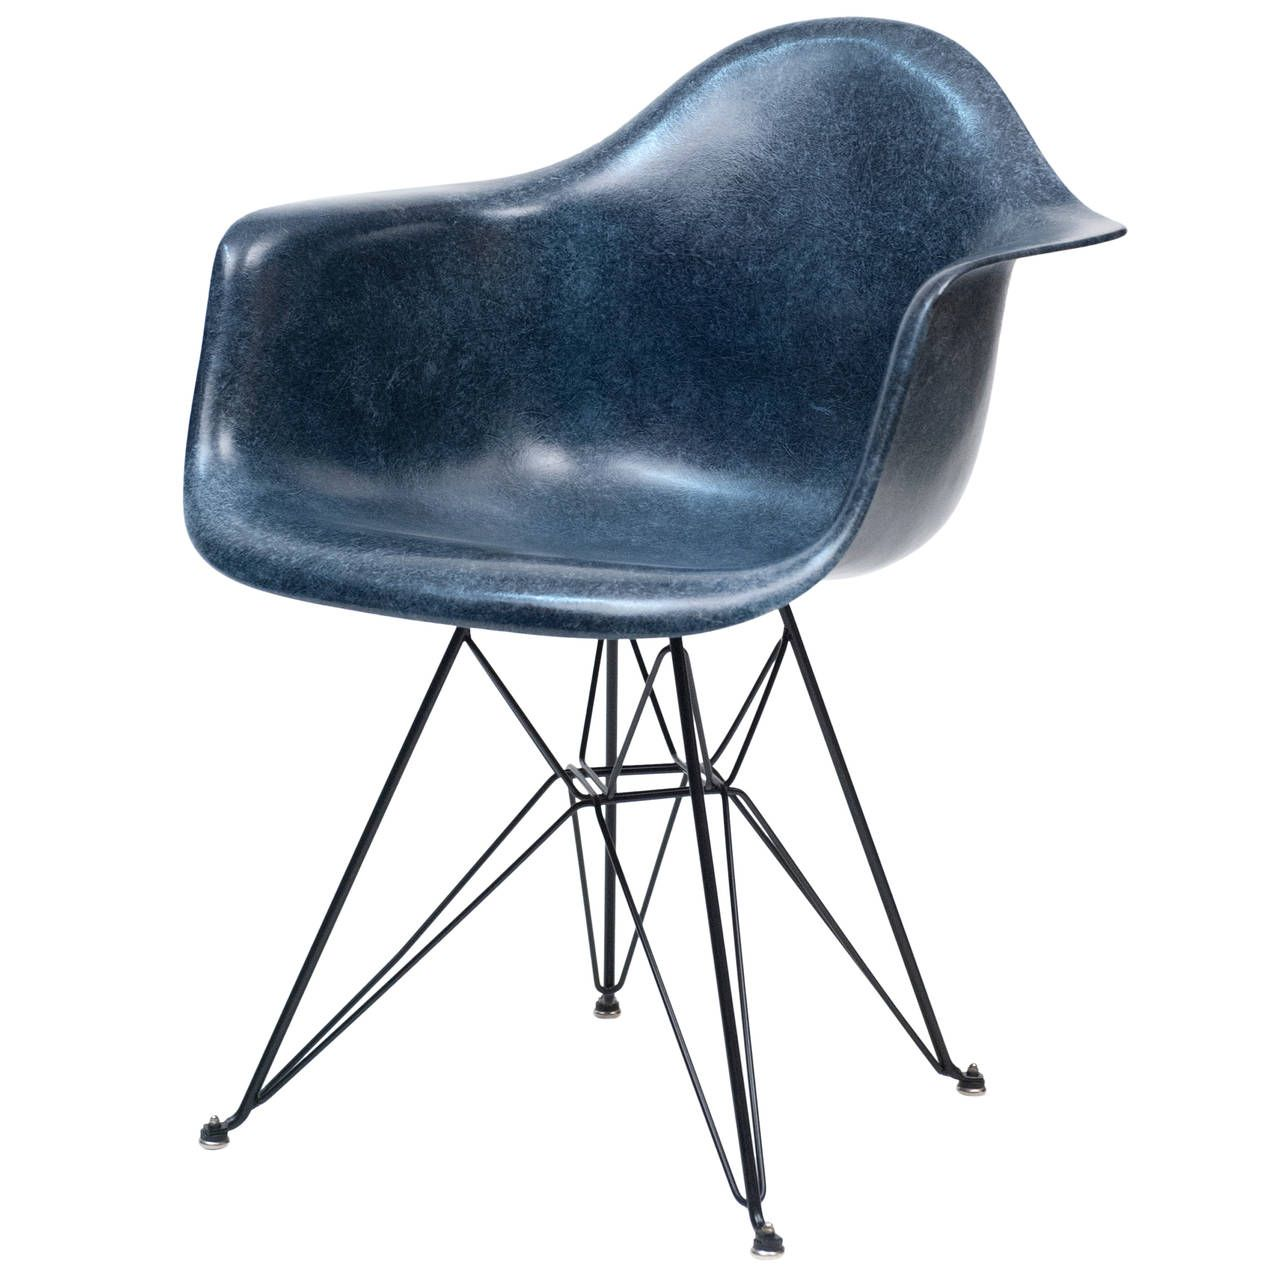 Eames Navy Blue Herman Miller Dar Shell Chair with Eiffel Tower BaseEames Navy Blue Herman Miller Dar Shell Chair with Eiffel Tower  . Eames Daw Chair Price. Home Design Ideas